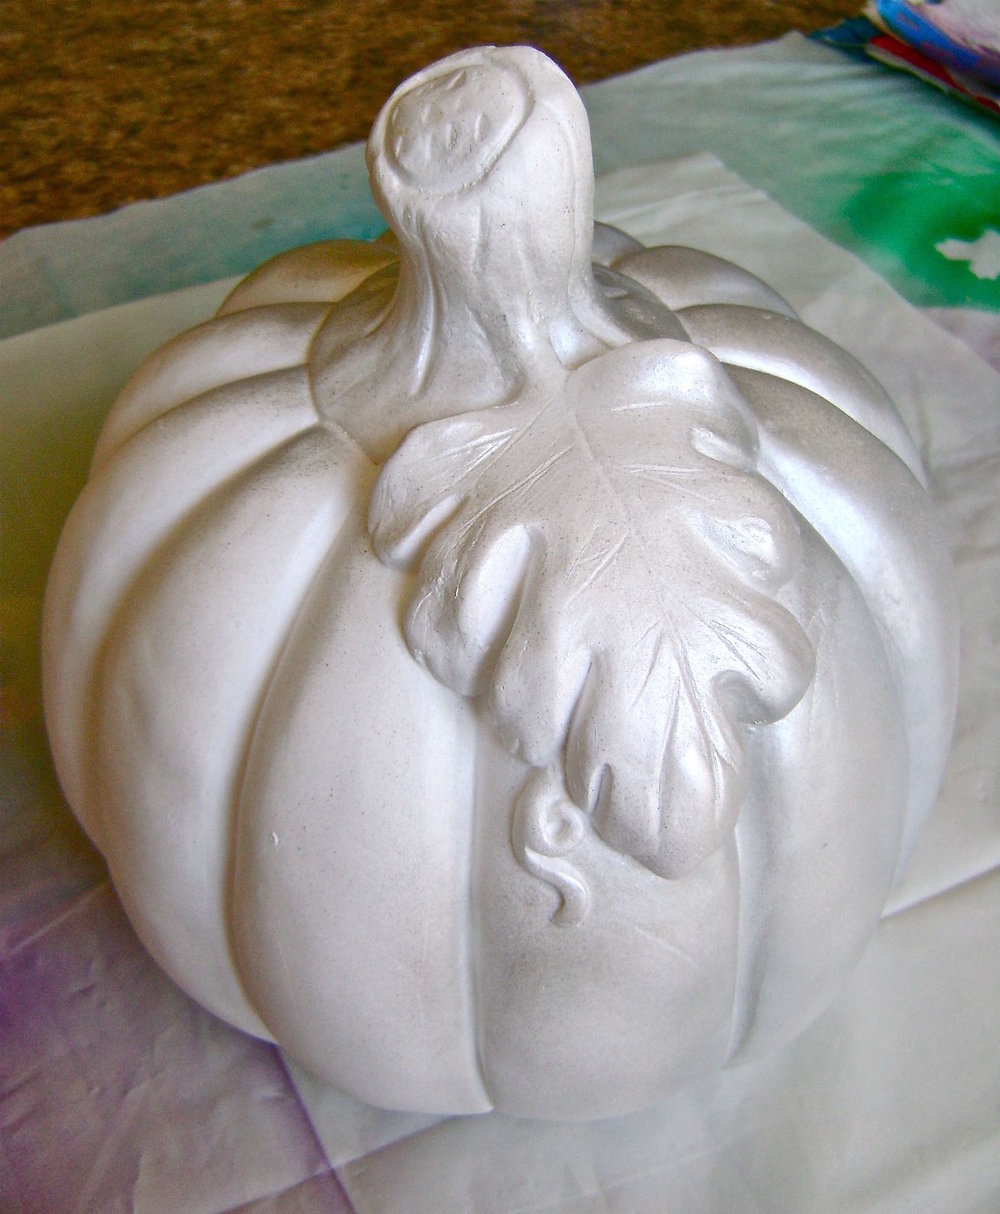 step 2 - On a protected surface, airbrush the pumpkin with silver paint.